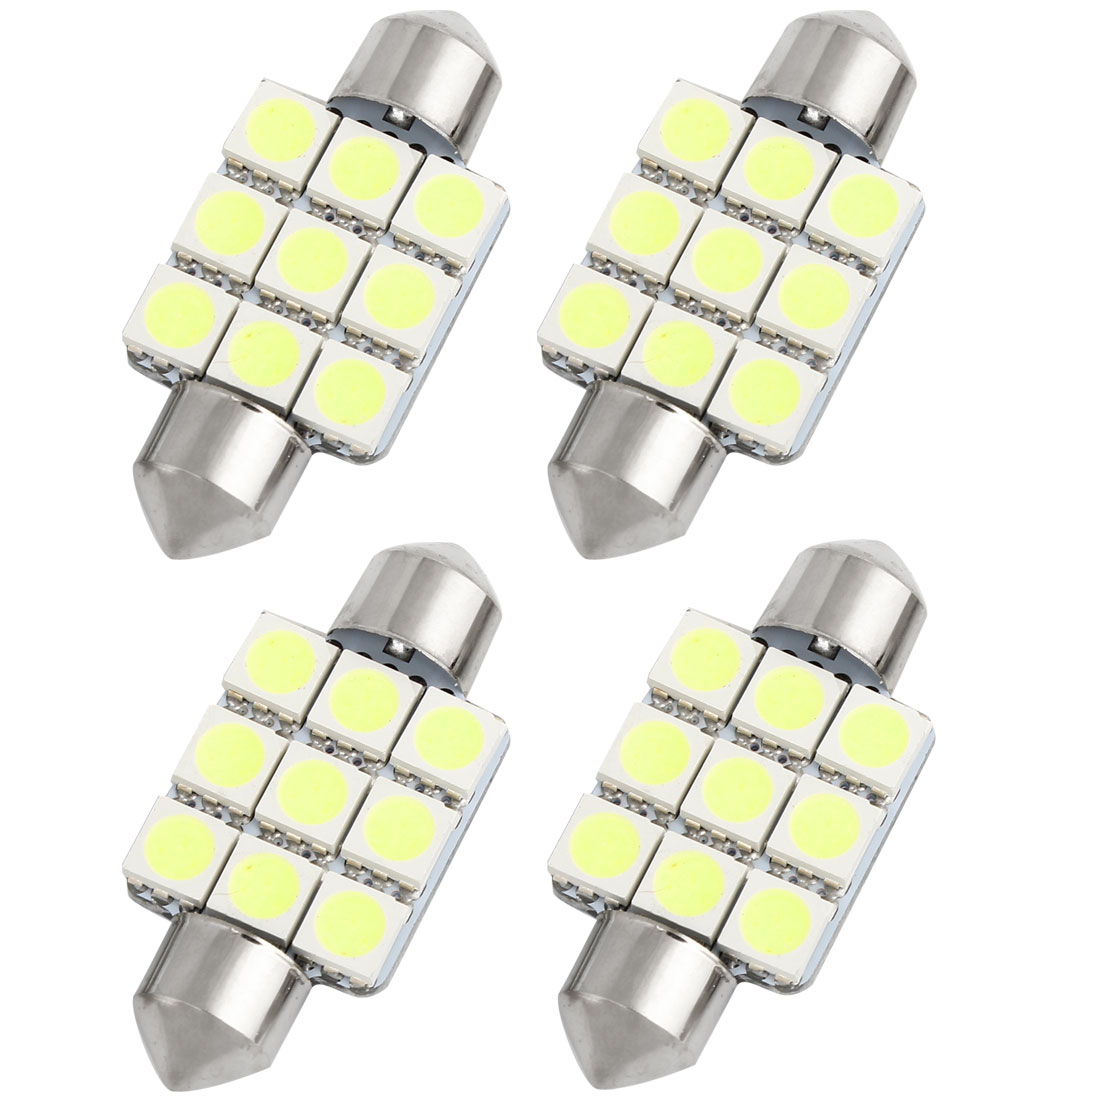 4pcs 36mm White 9 LED 5050 SMD Festoon Dome Light Lamp 6418 DE3423 DE3425 Internal